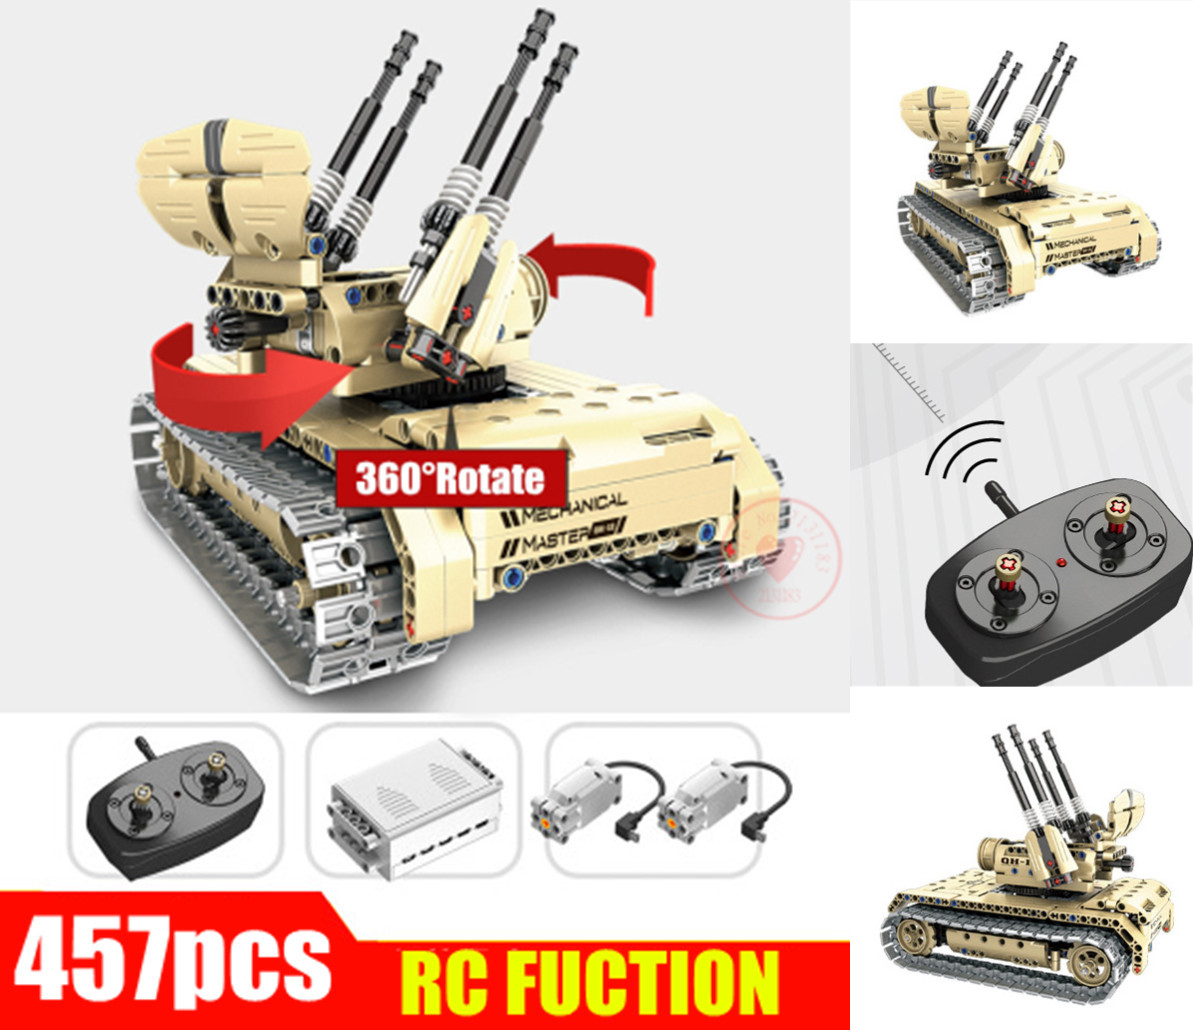 Remote Control Self-propelled Anti-aircraft Gun Tank 360 Rotate fit legoings technic Military RC car Building Block Bricks Toy peter block stewardship choosing service over self interest